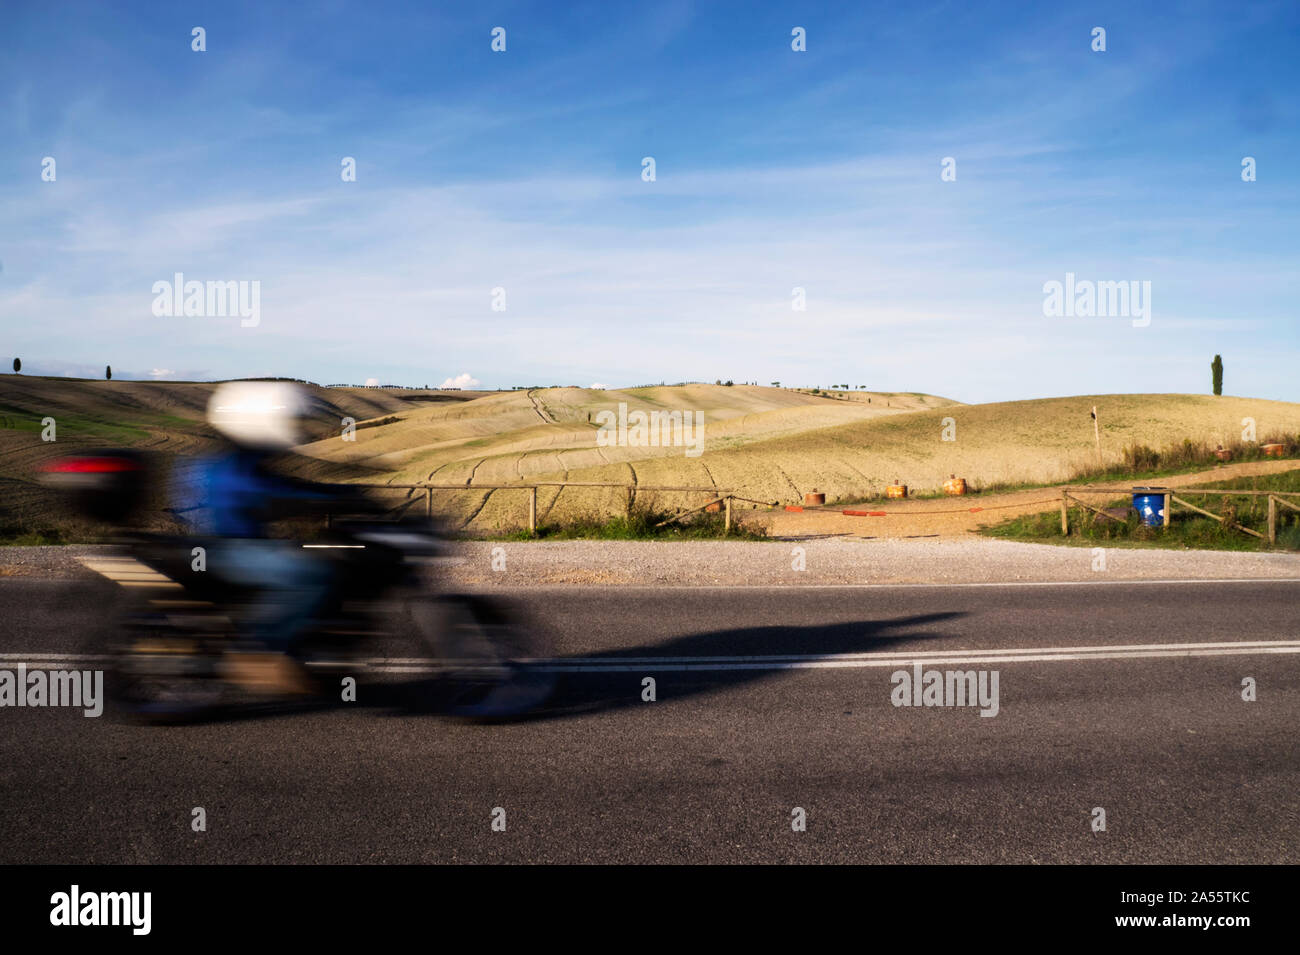 Speed of a biker versus the tranquility of nature Stock Photo